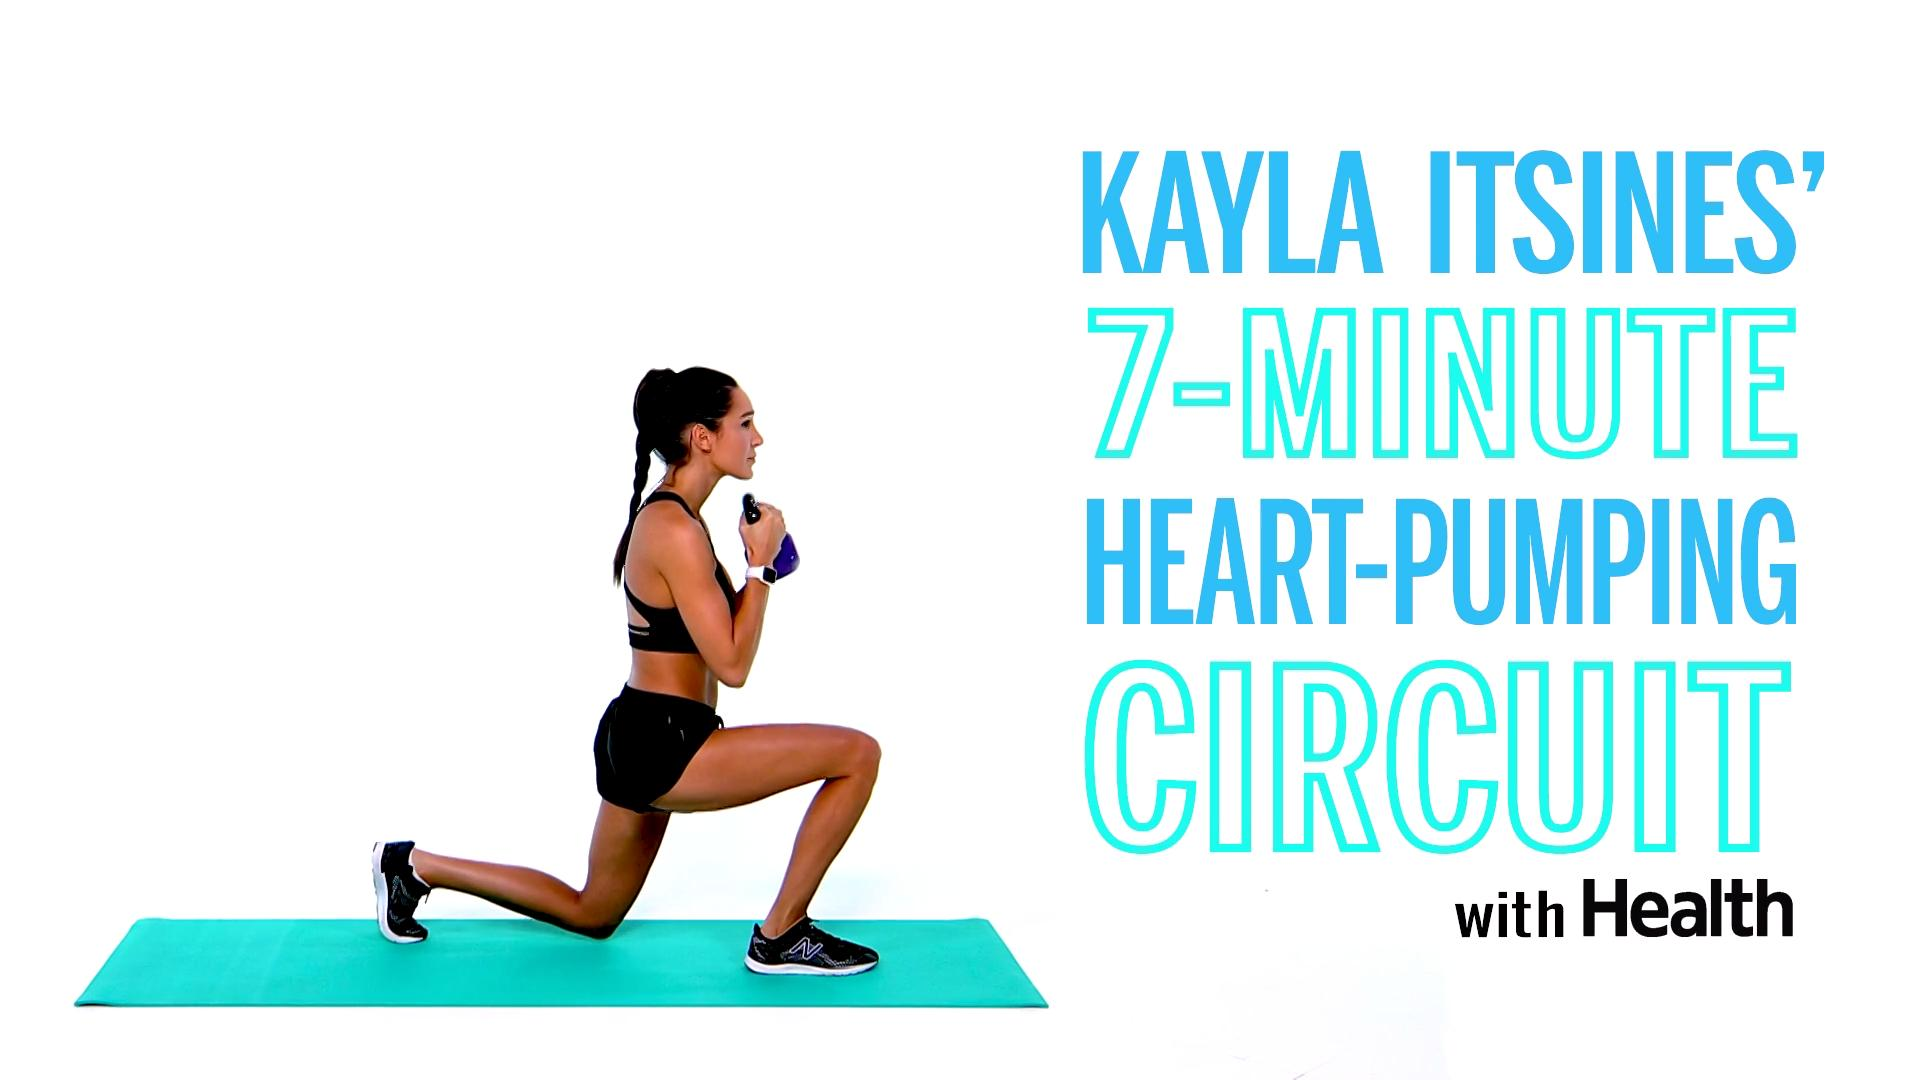 Kayla Itsines' 7-Minute Heart-Pumping Circuit